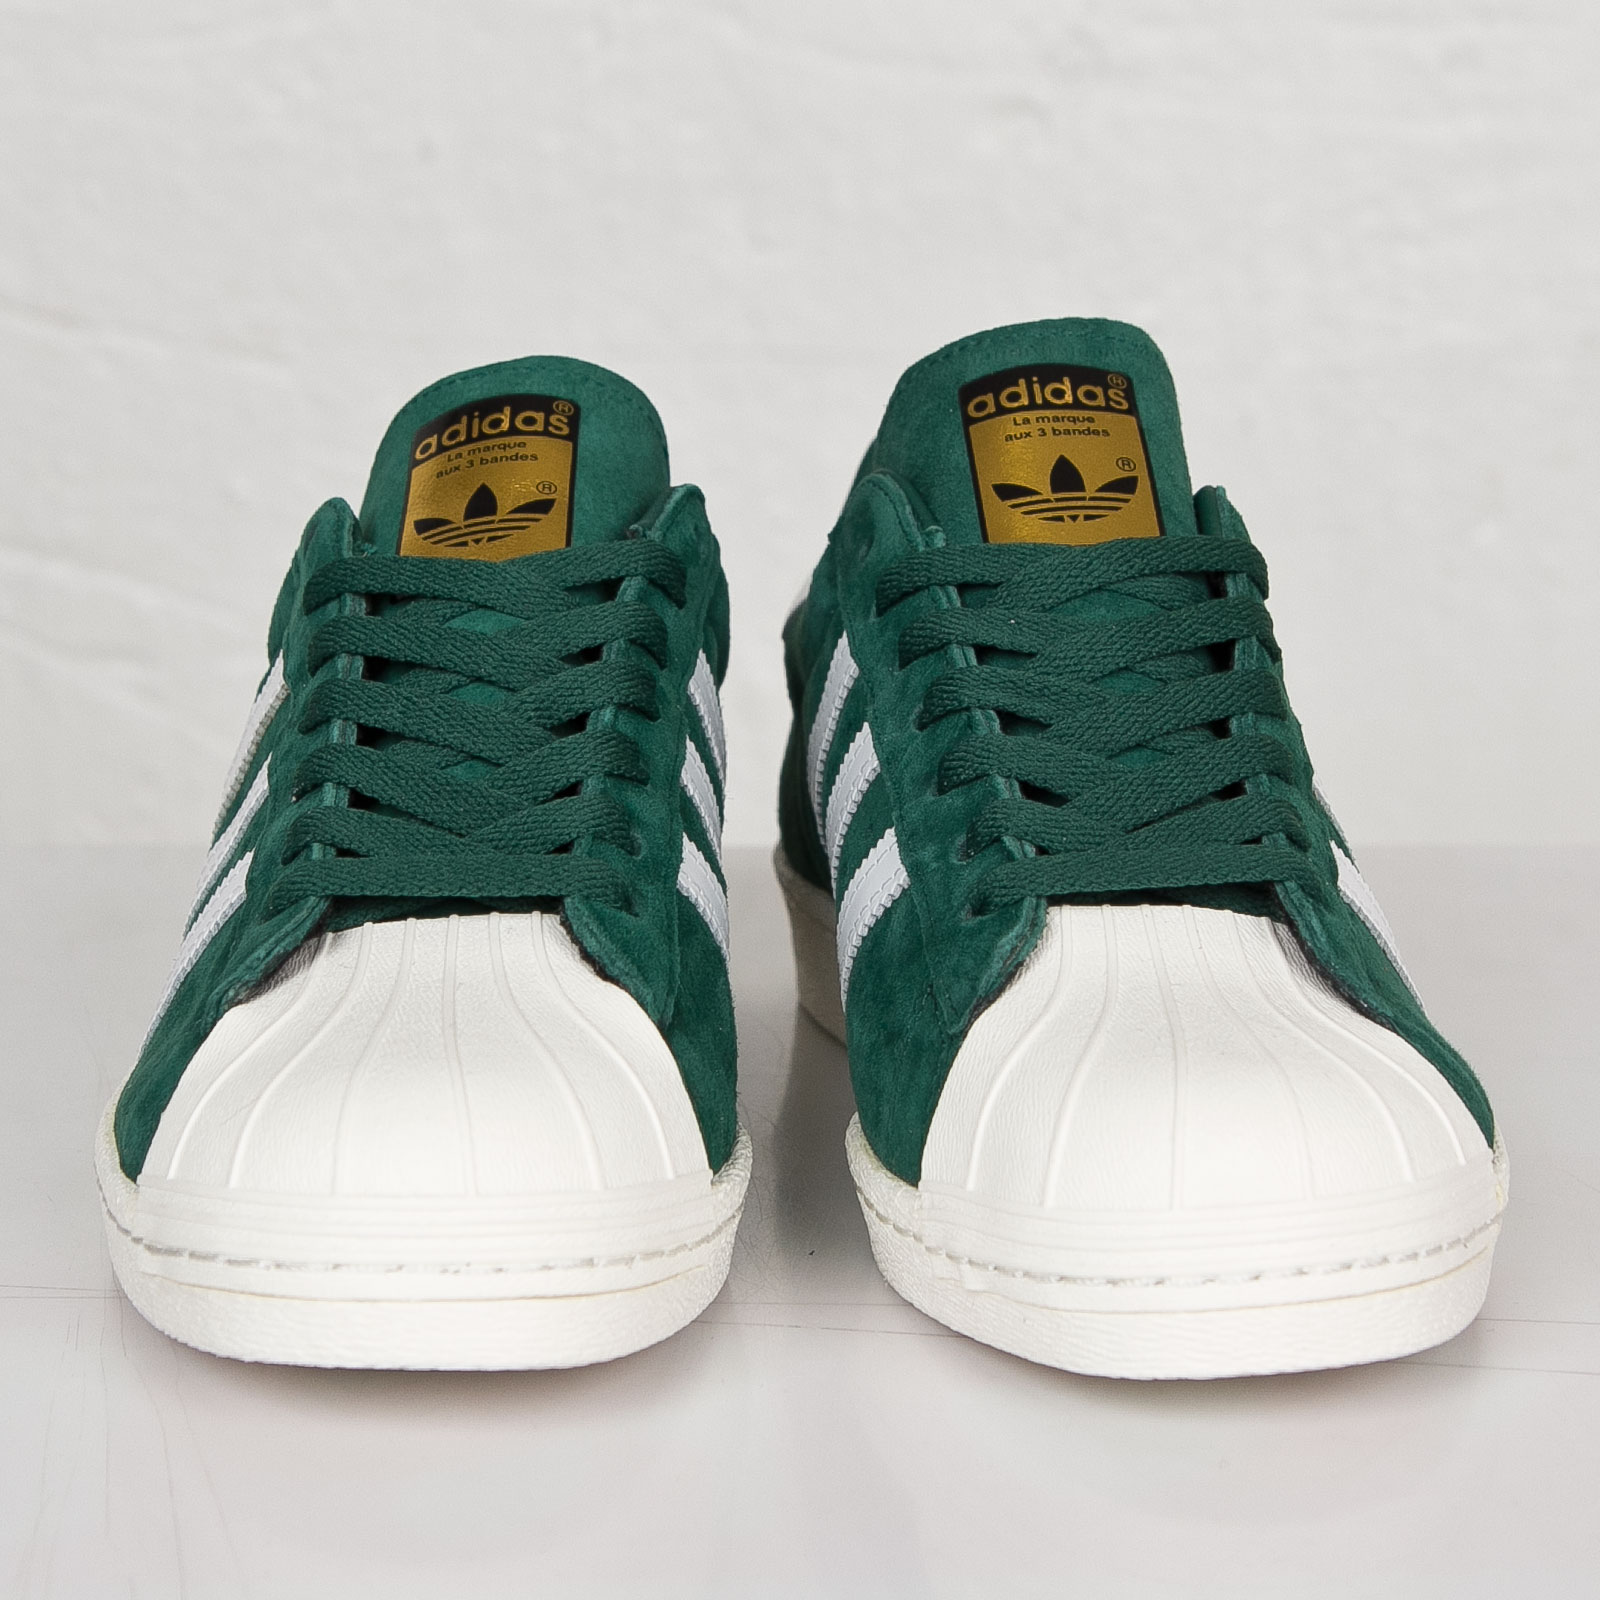 size 40 ae5b9 9bf1b adidas Superstar 80s Deluxe Suede - B35987 - Sneakersnstuff   sneakers    streetwear online since 1999